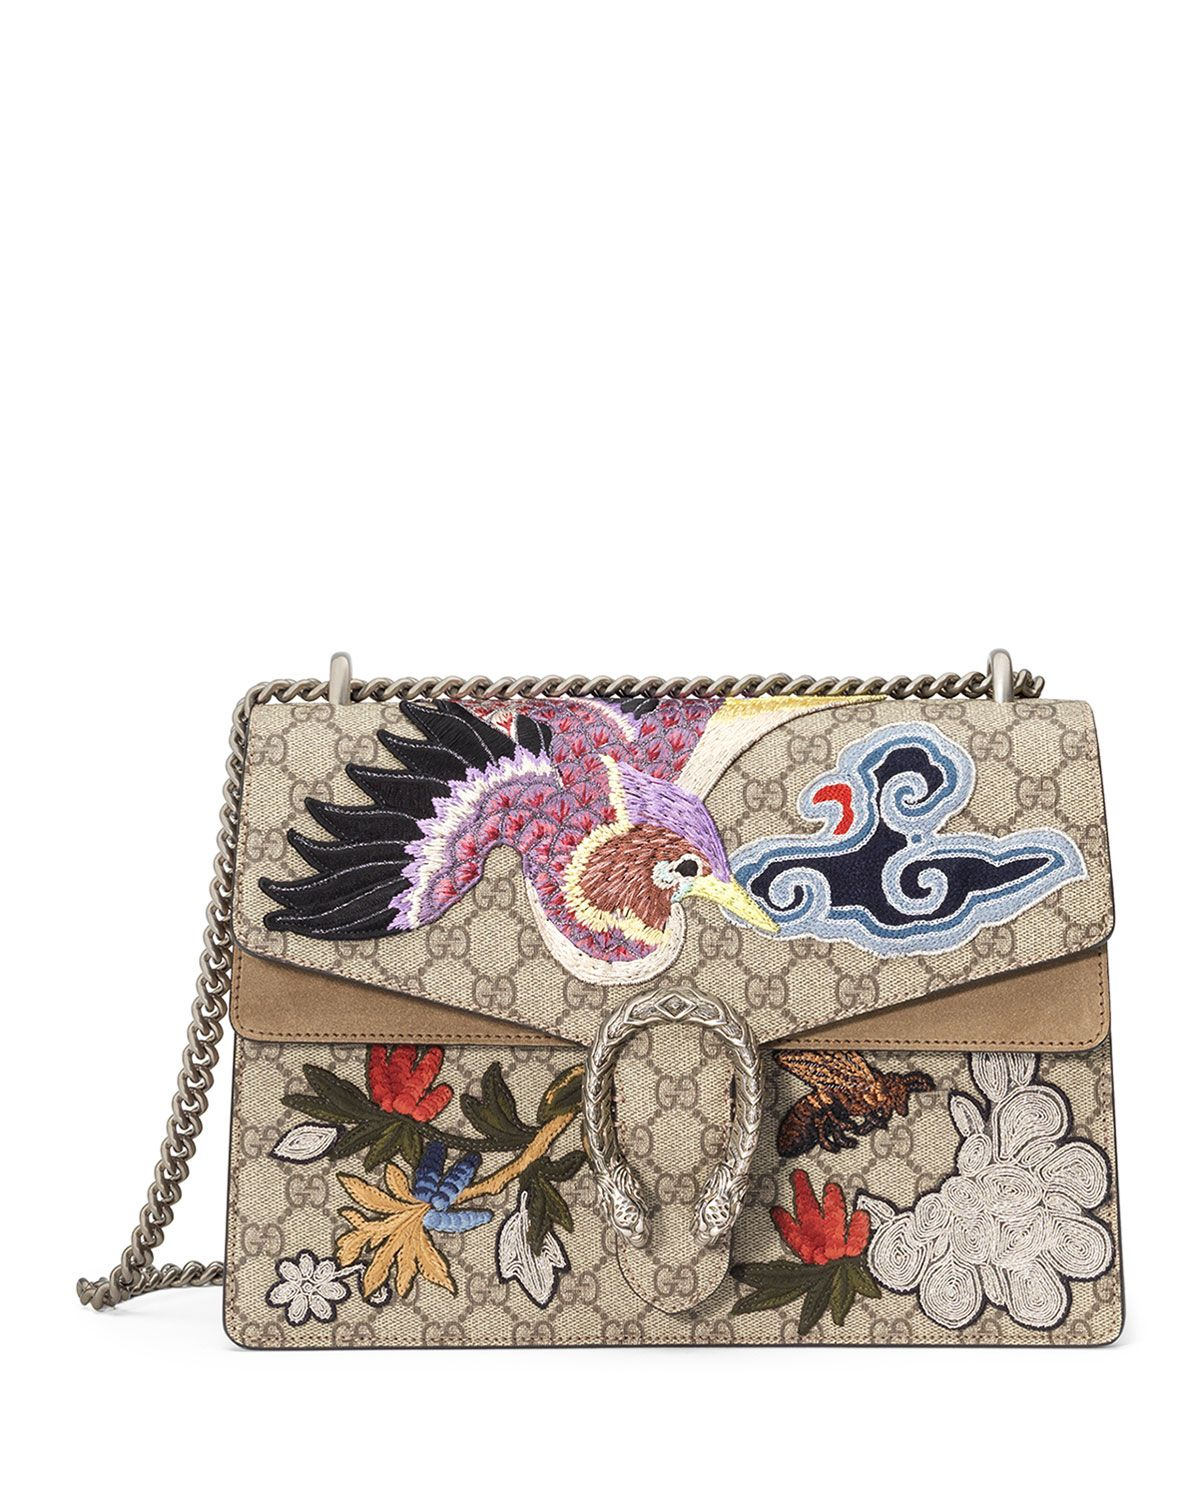 c247e699c7593f Gucci Dionysus Medium Bird Embroidered Shoulder Bag, Multi, Size: M